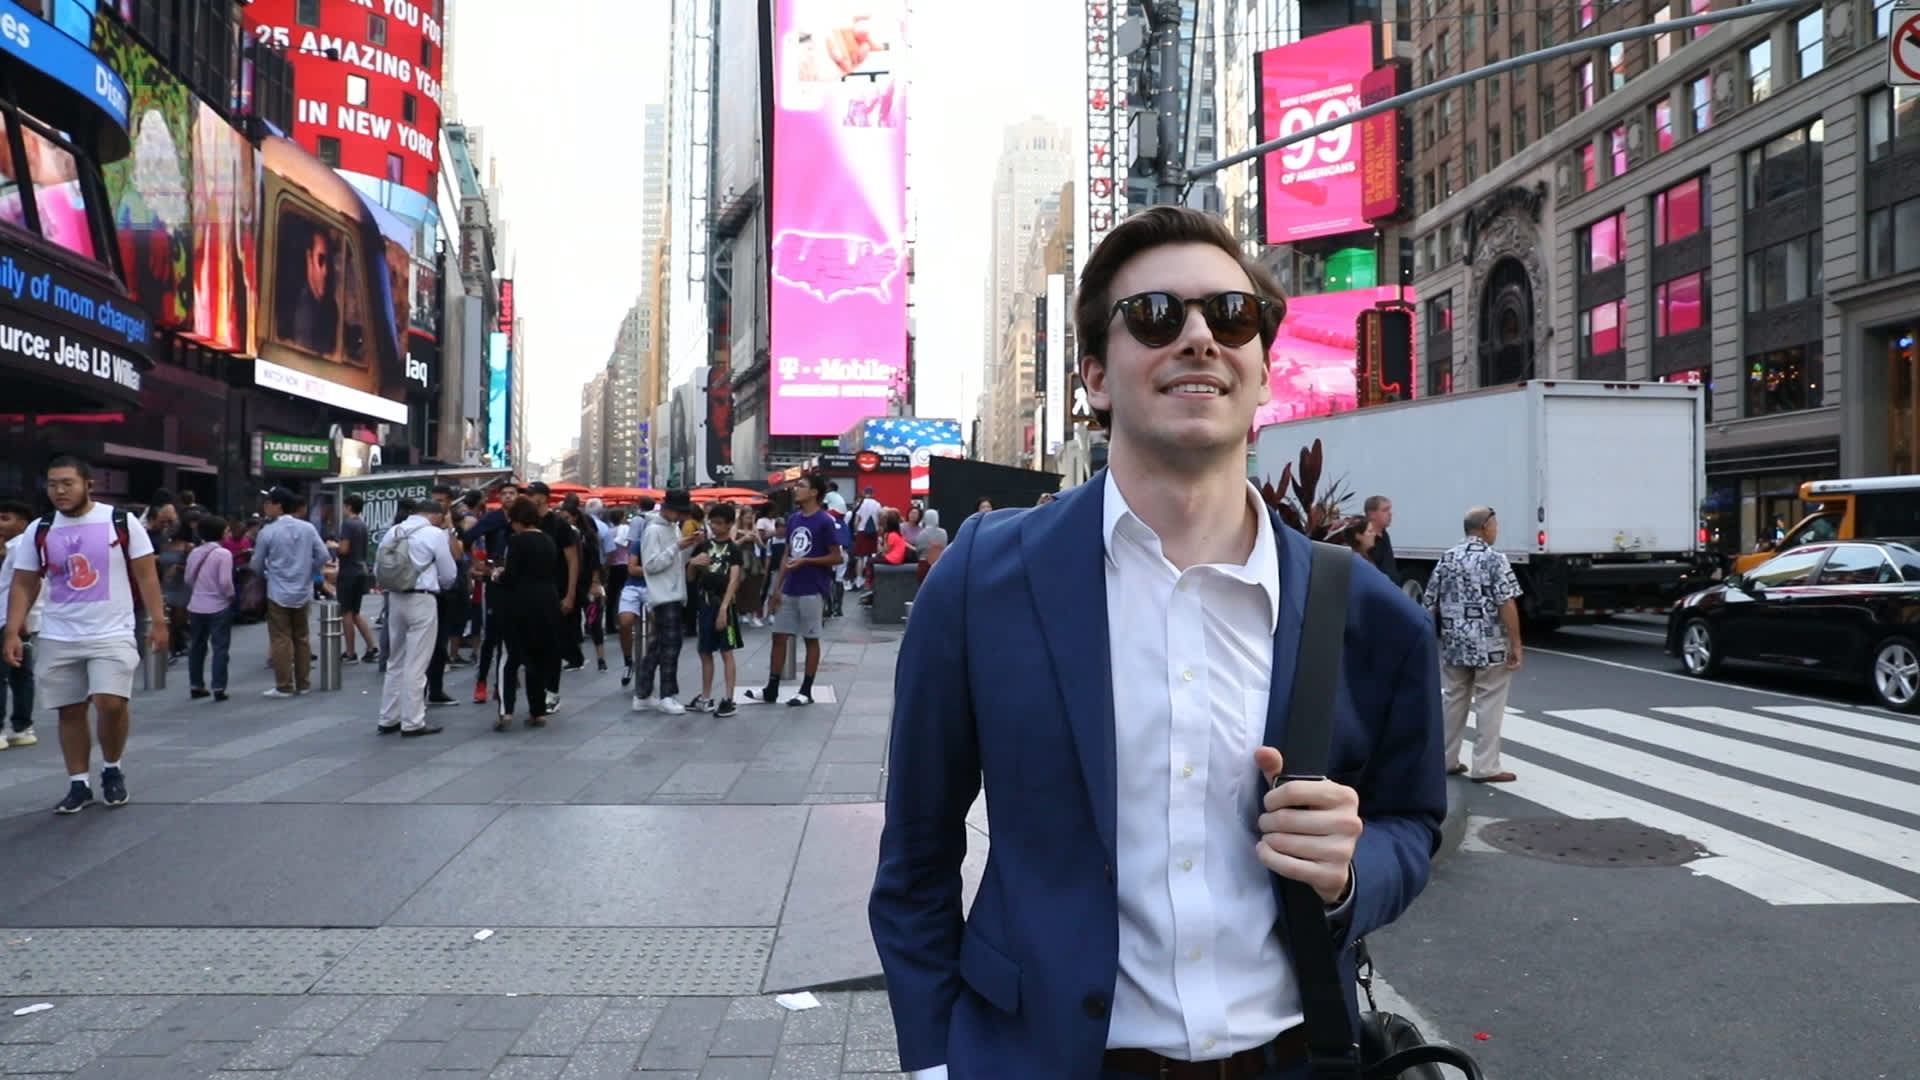 How a 23-year-old making $172,000 a year in New York City spends his money